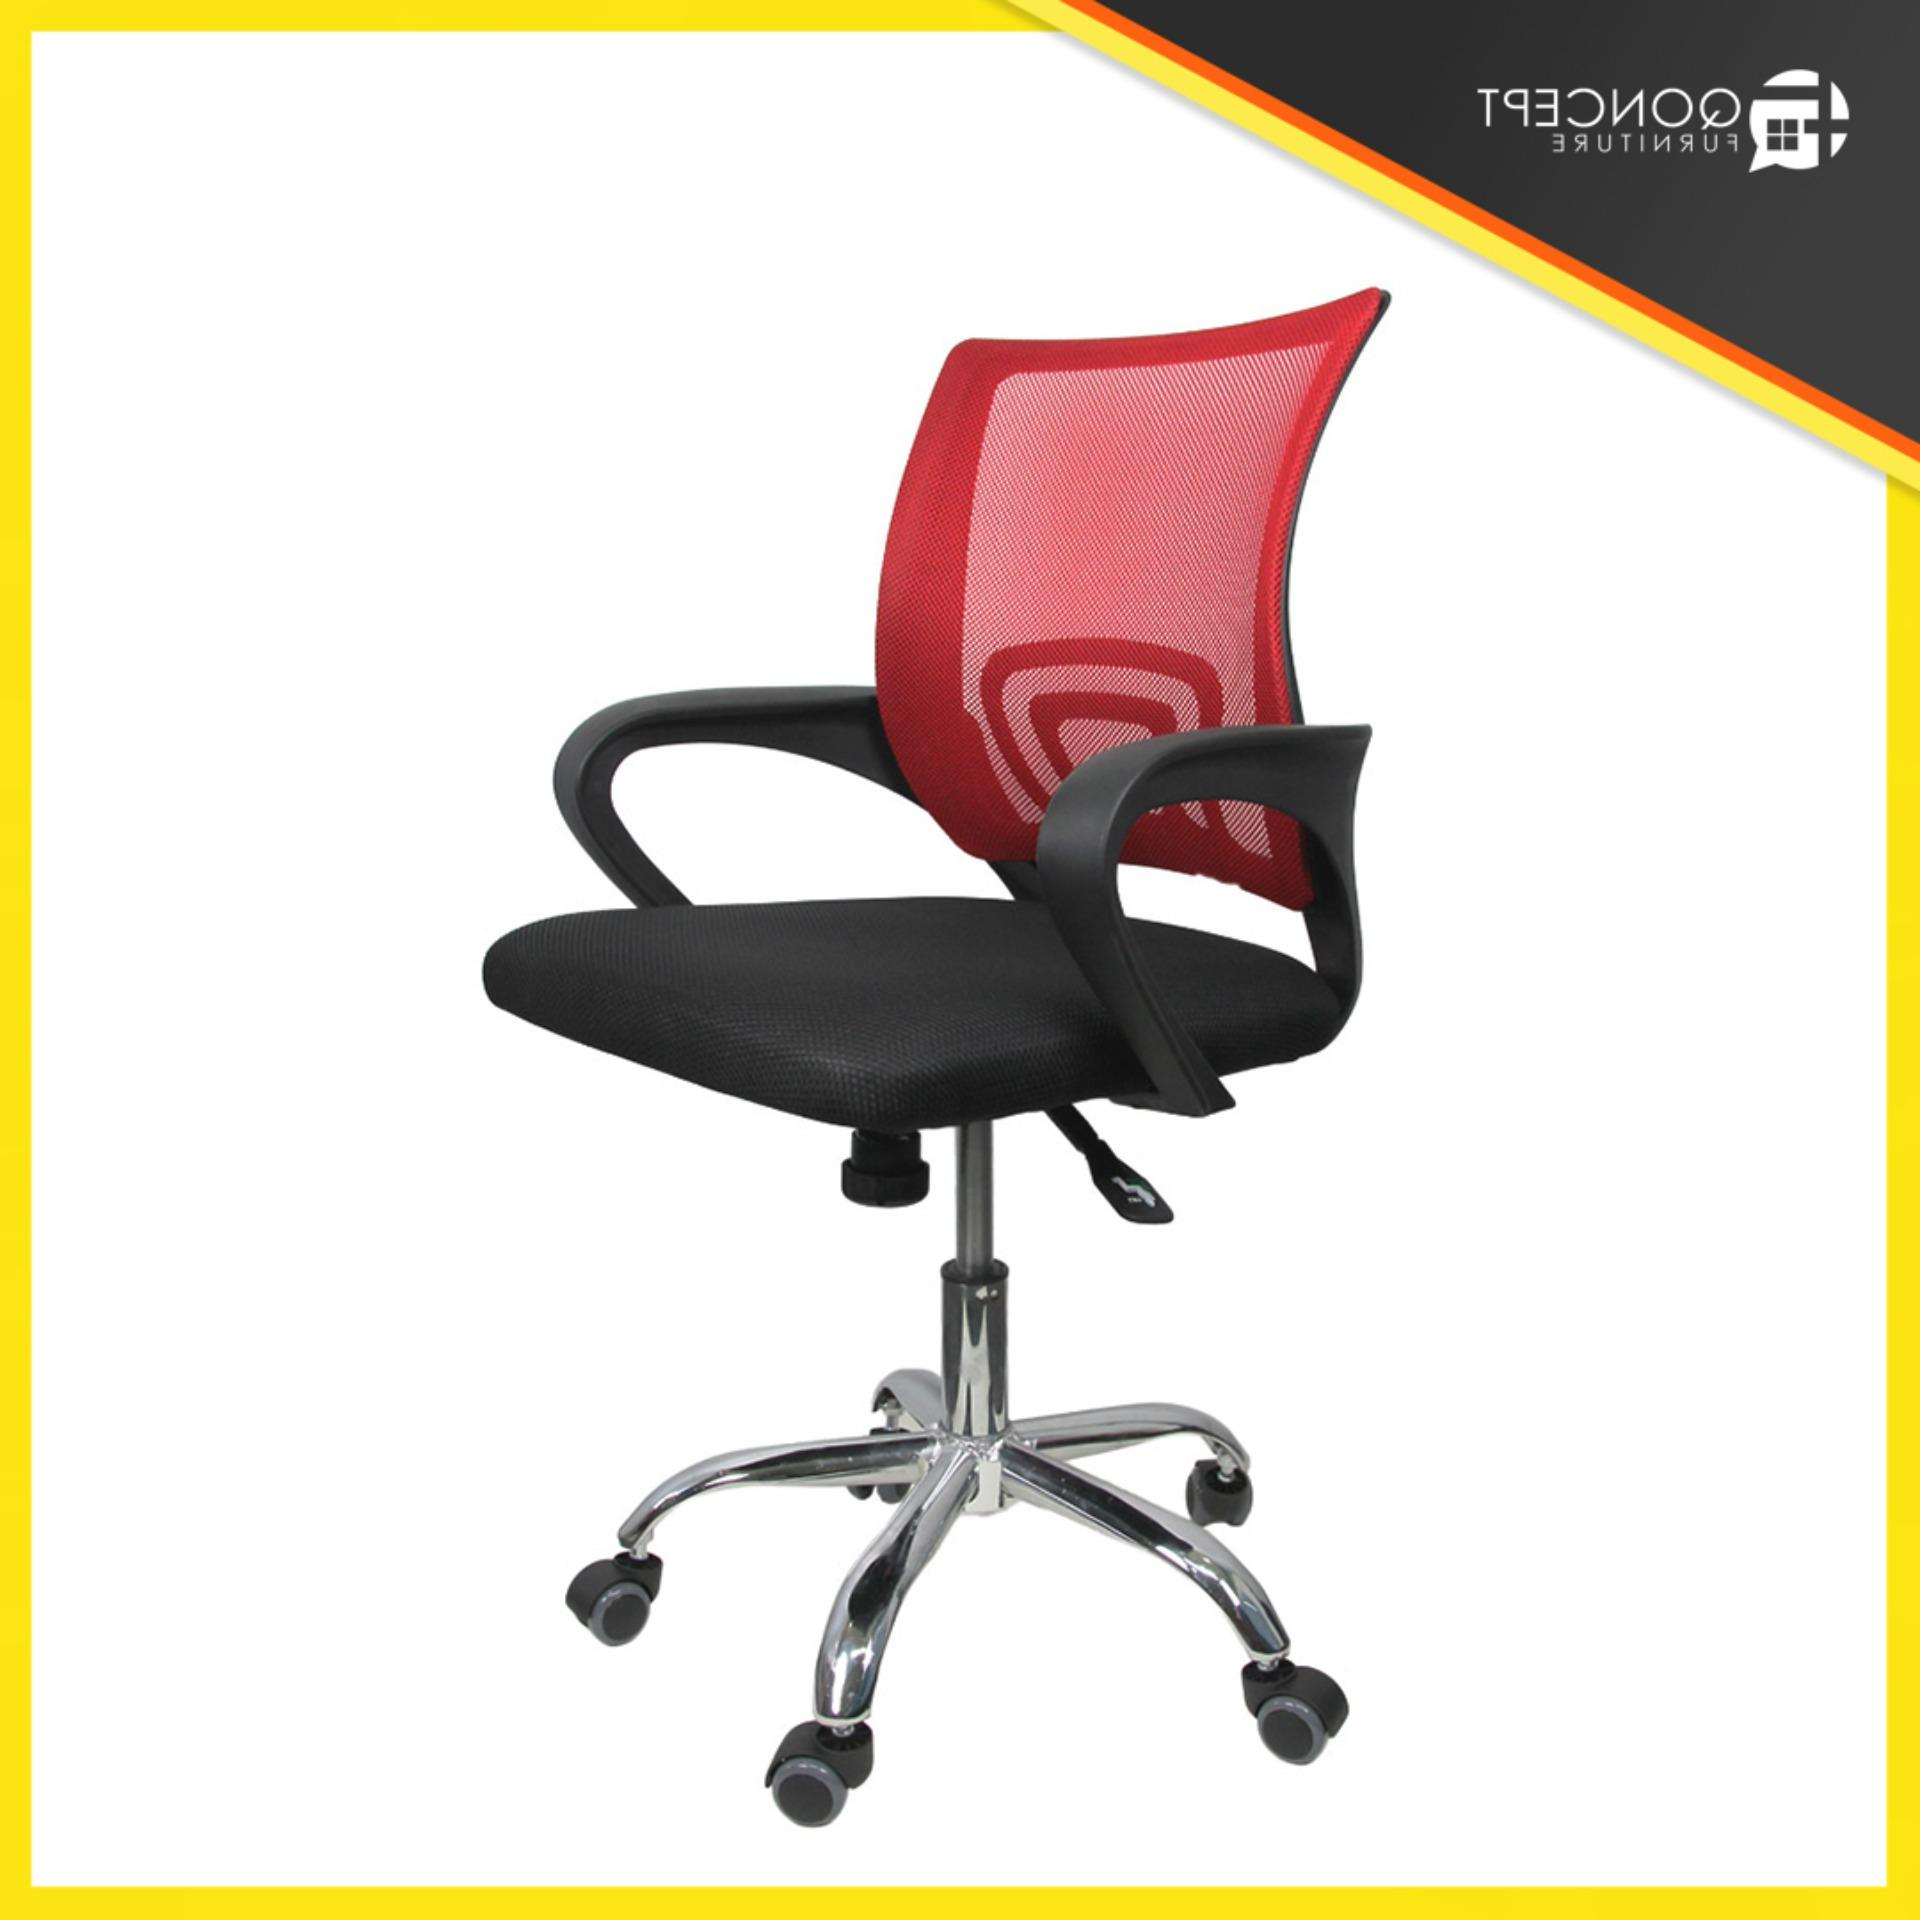 Chill Swivel Chairs With Metal Base For Trendy Office Chair For Sale – Office Computer Chair Prices, Brands (Gallery 20 of 20)